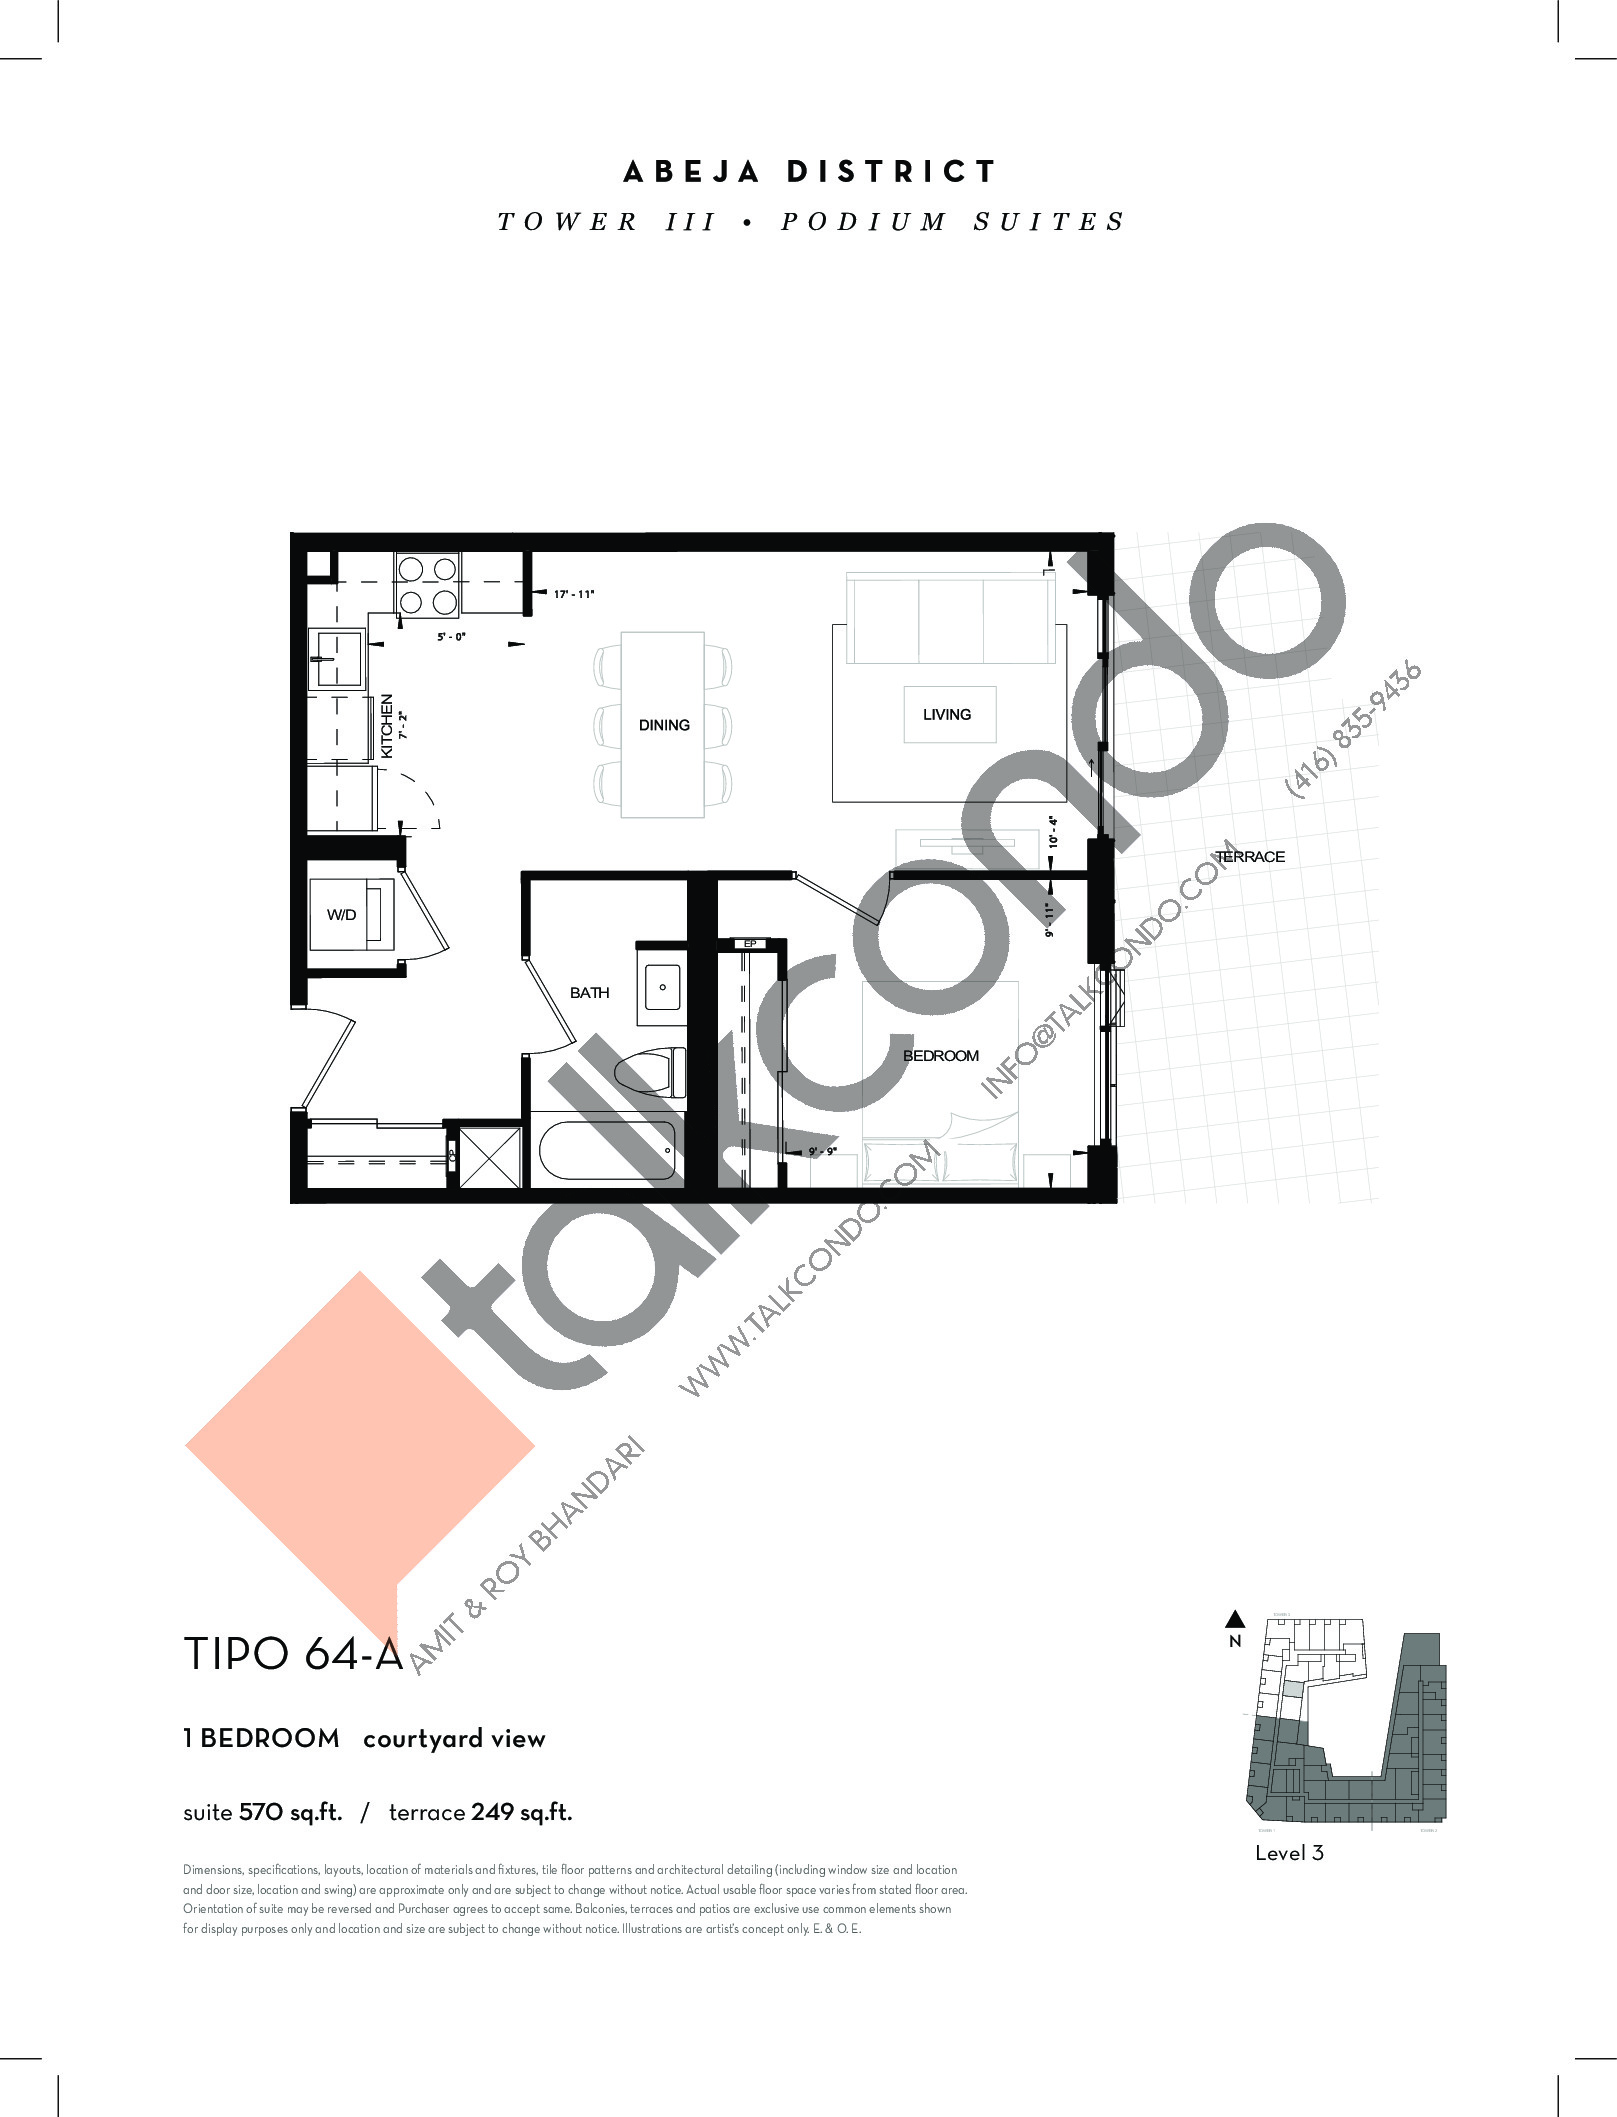 TIPO 64-A Floor Plan at Abeja District Condos Tower 3 - 570 sq.ft